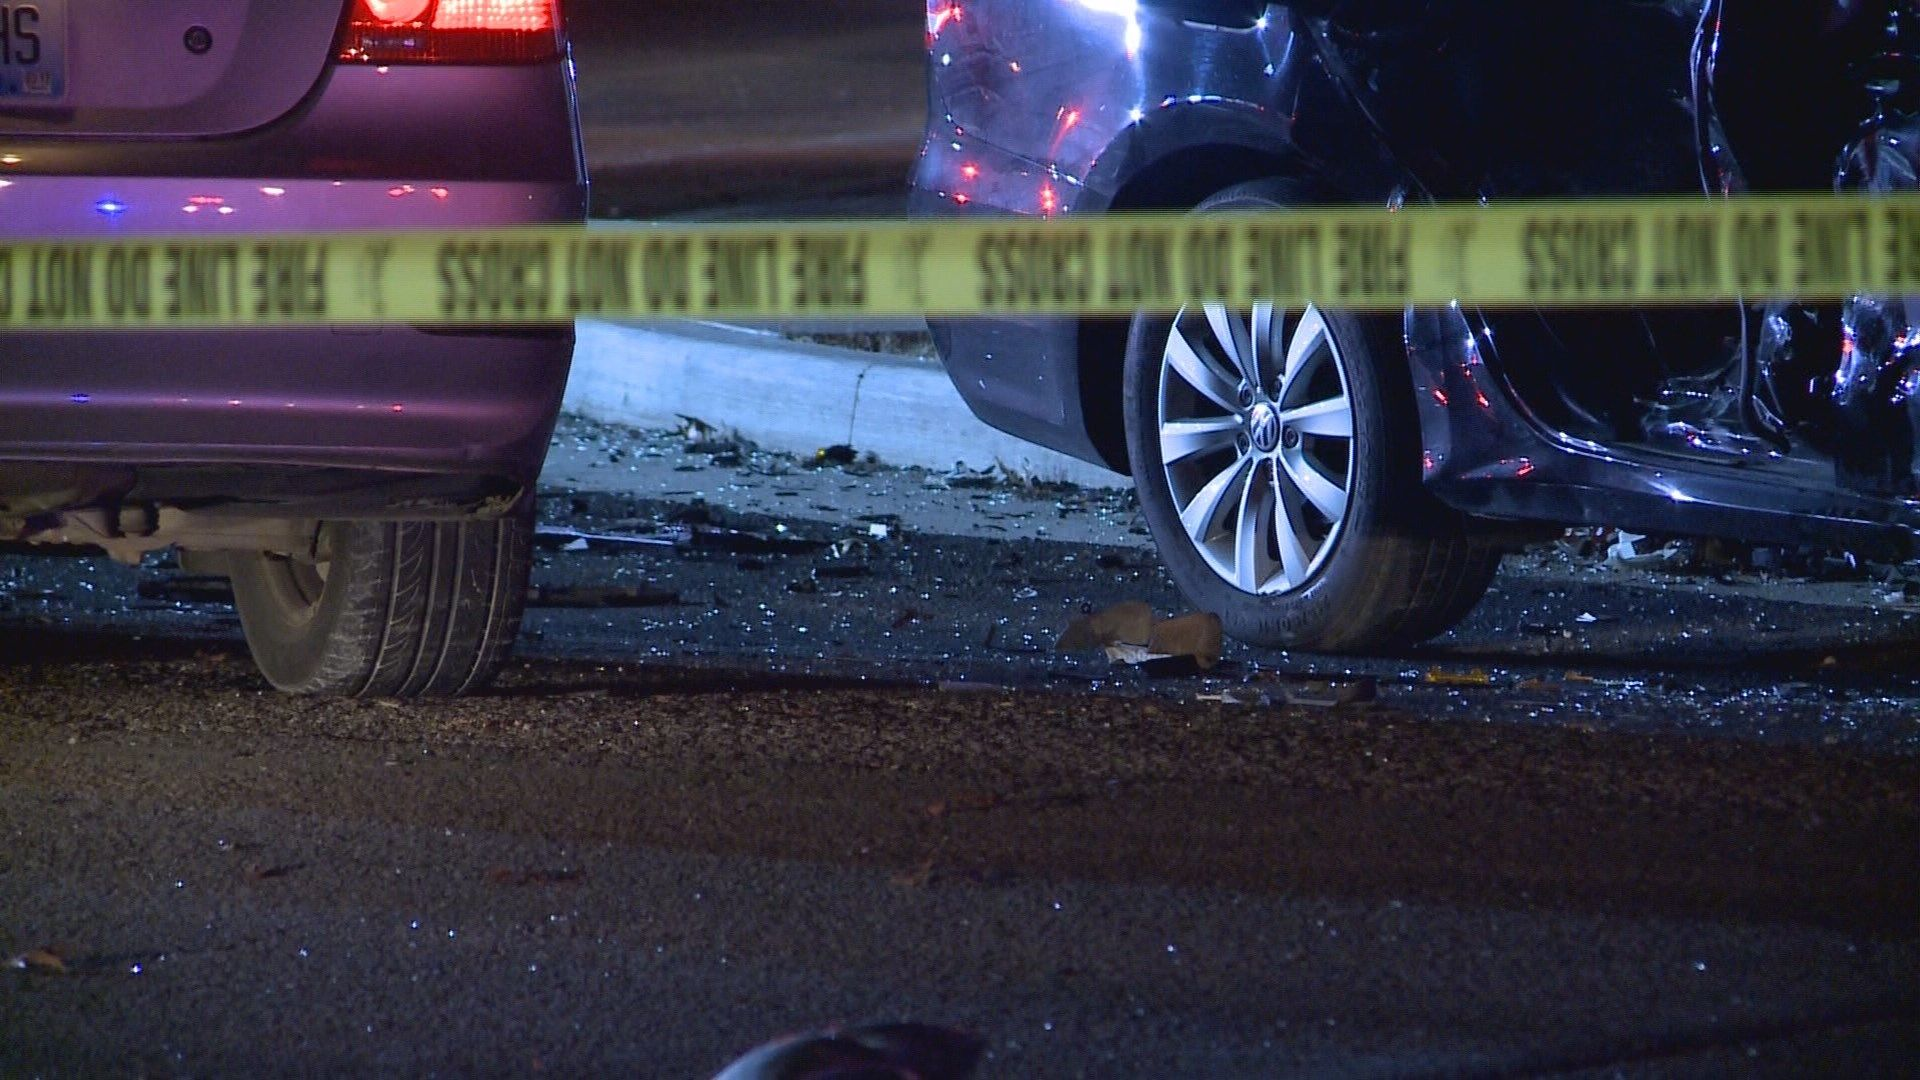 LOUISVILLE, Ky. (WHAS11) Two people have now been